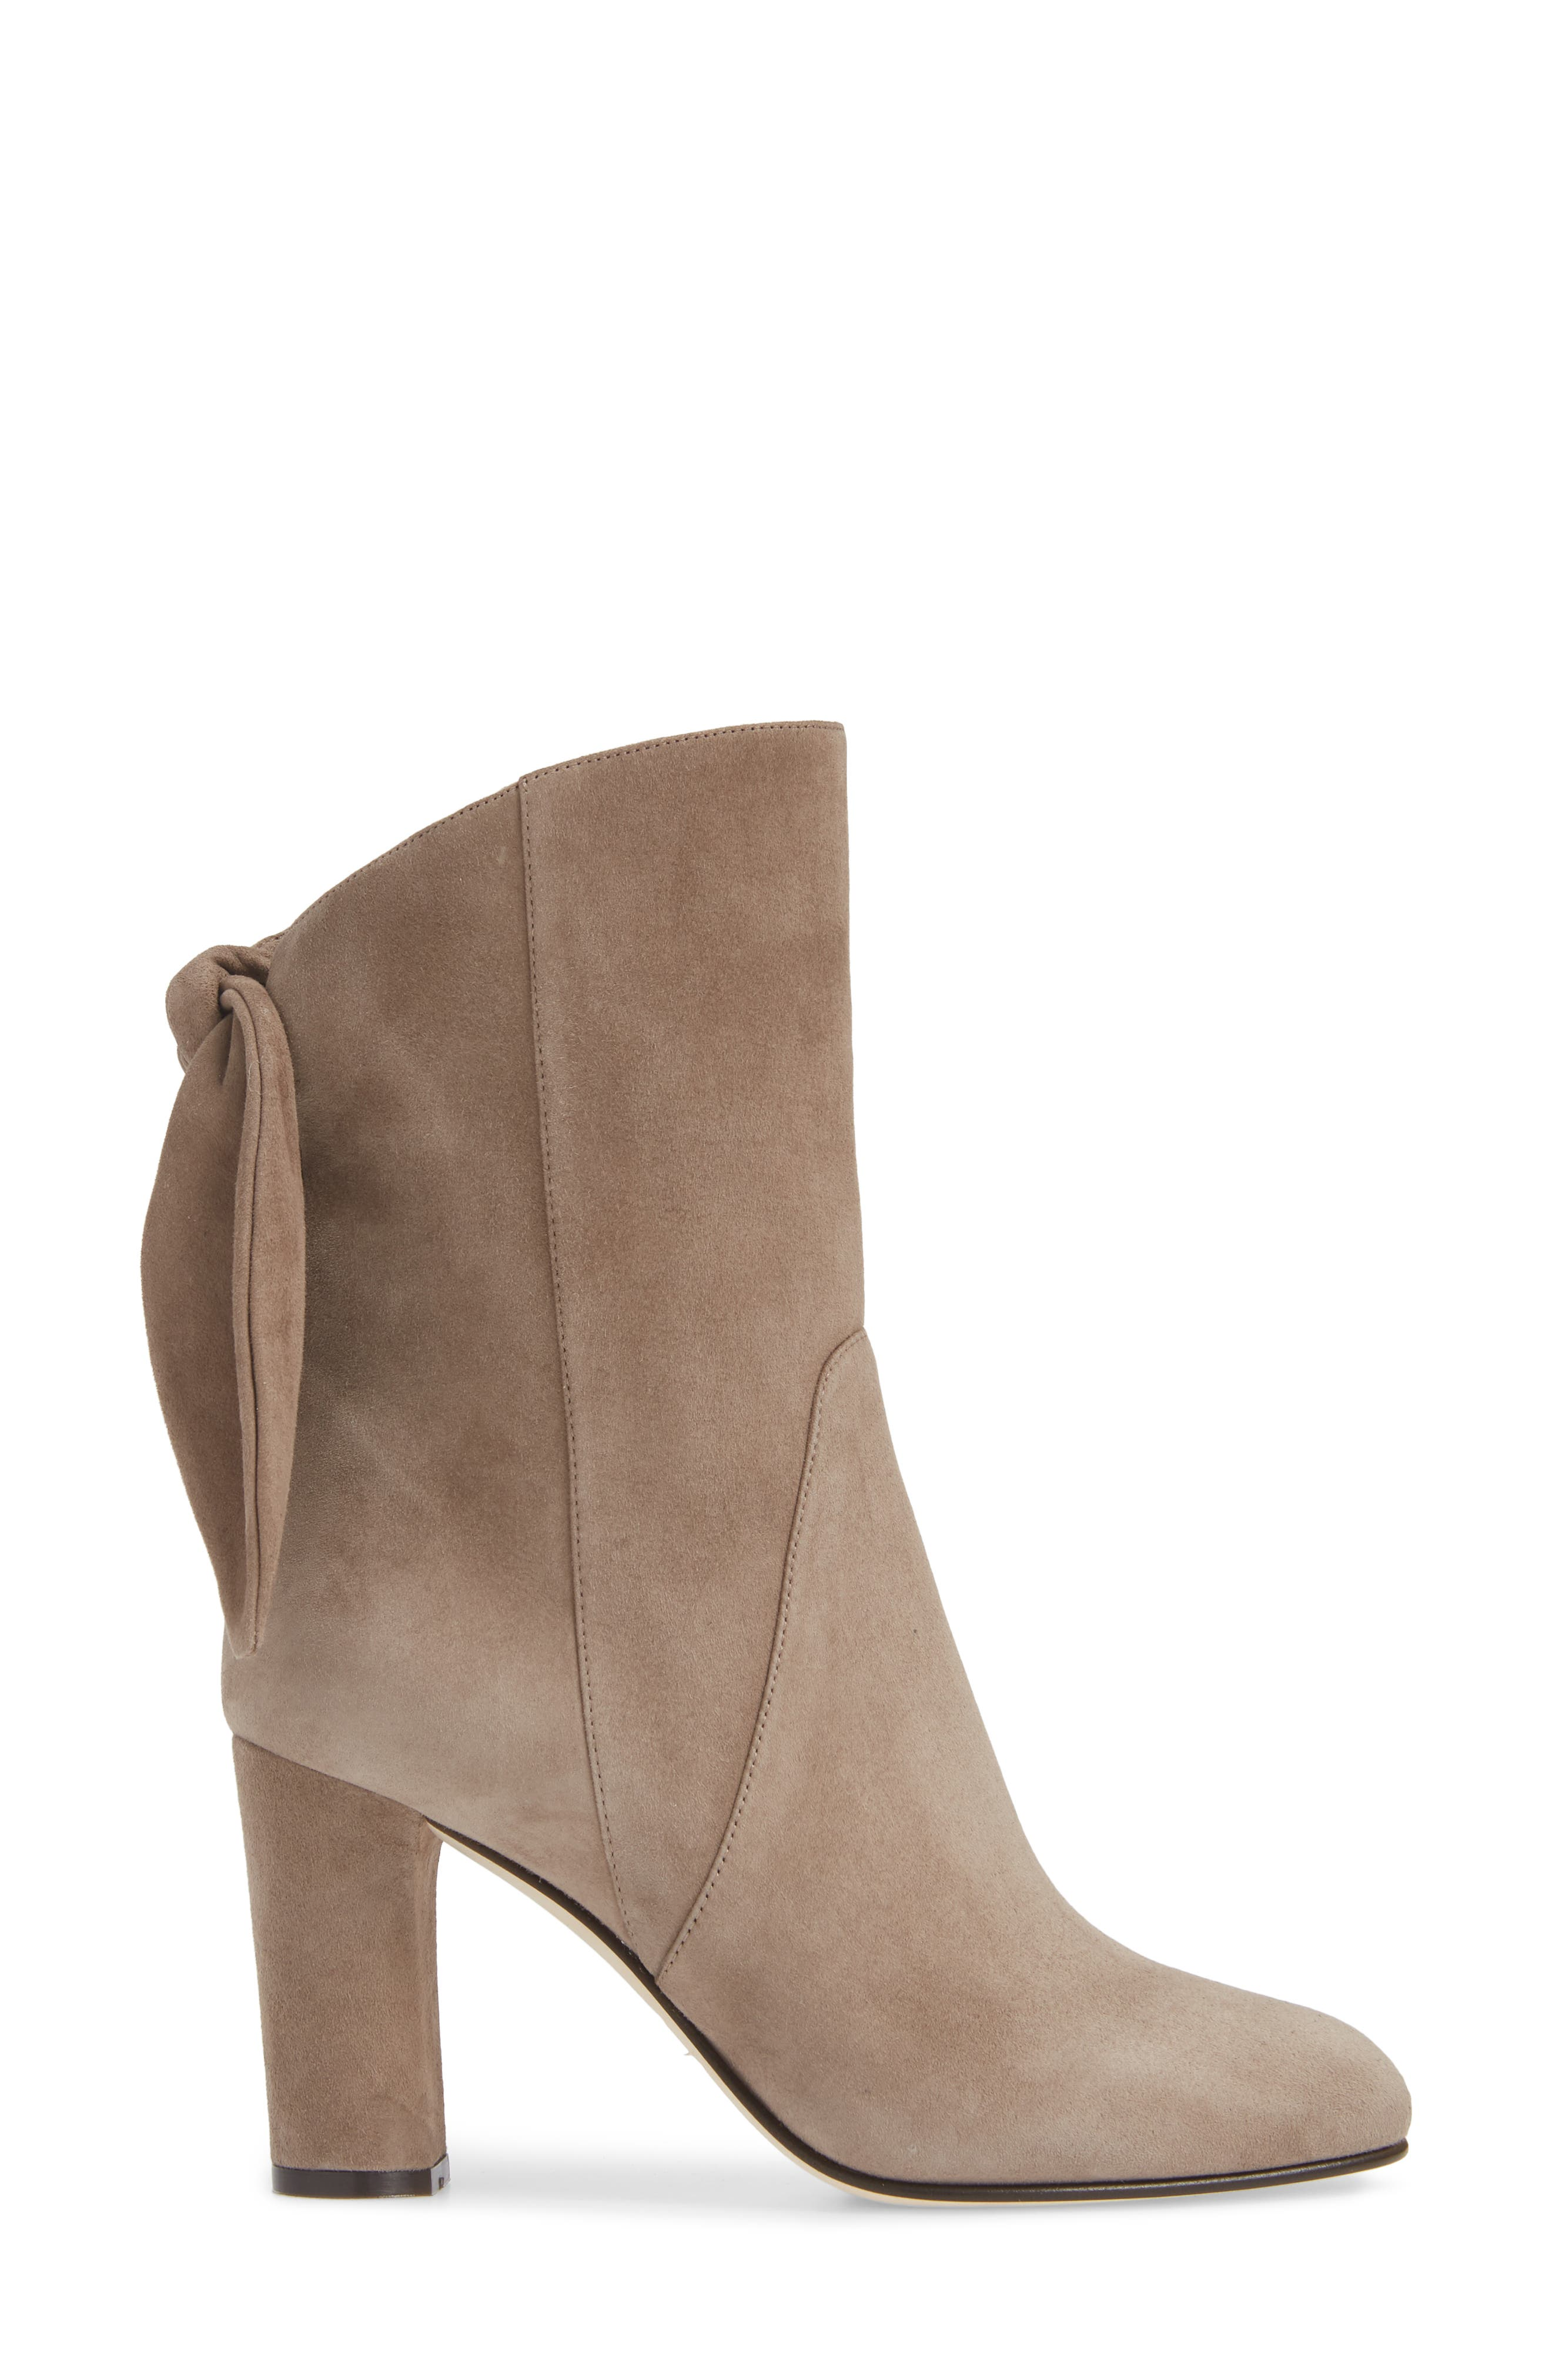 Malene Knotted Bootie,                             Alternate thumbnail 3, color,                             STONE SUEDE